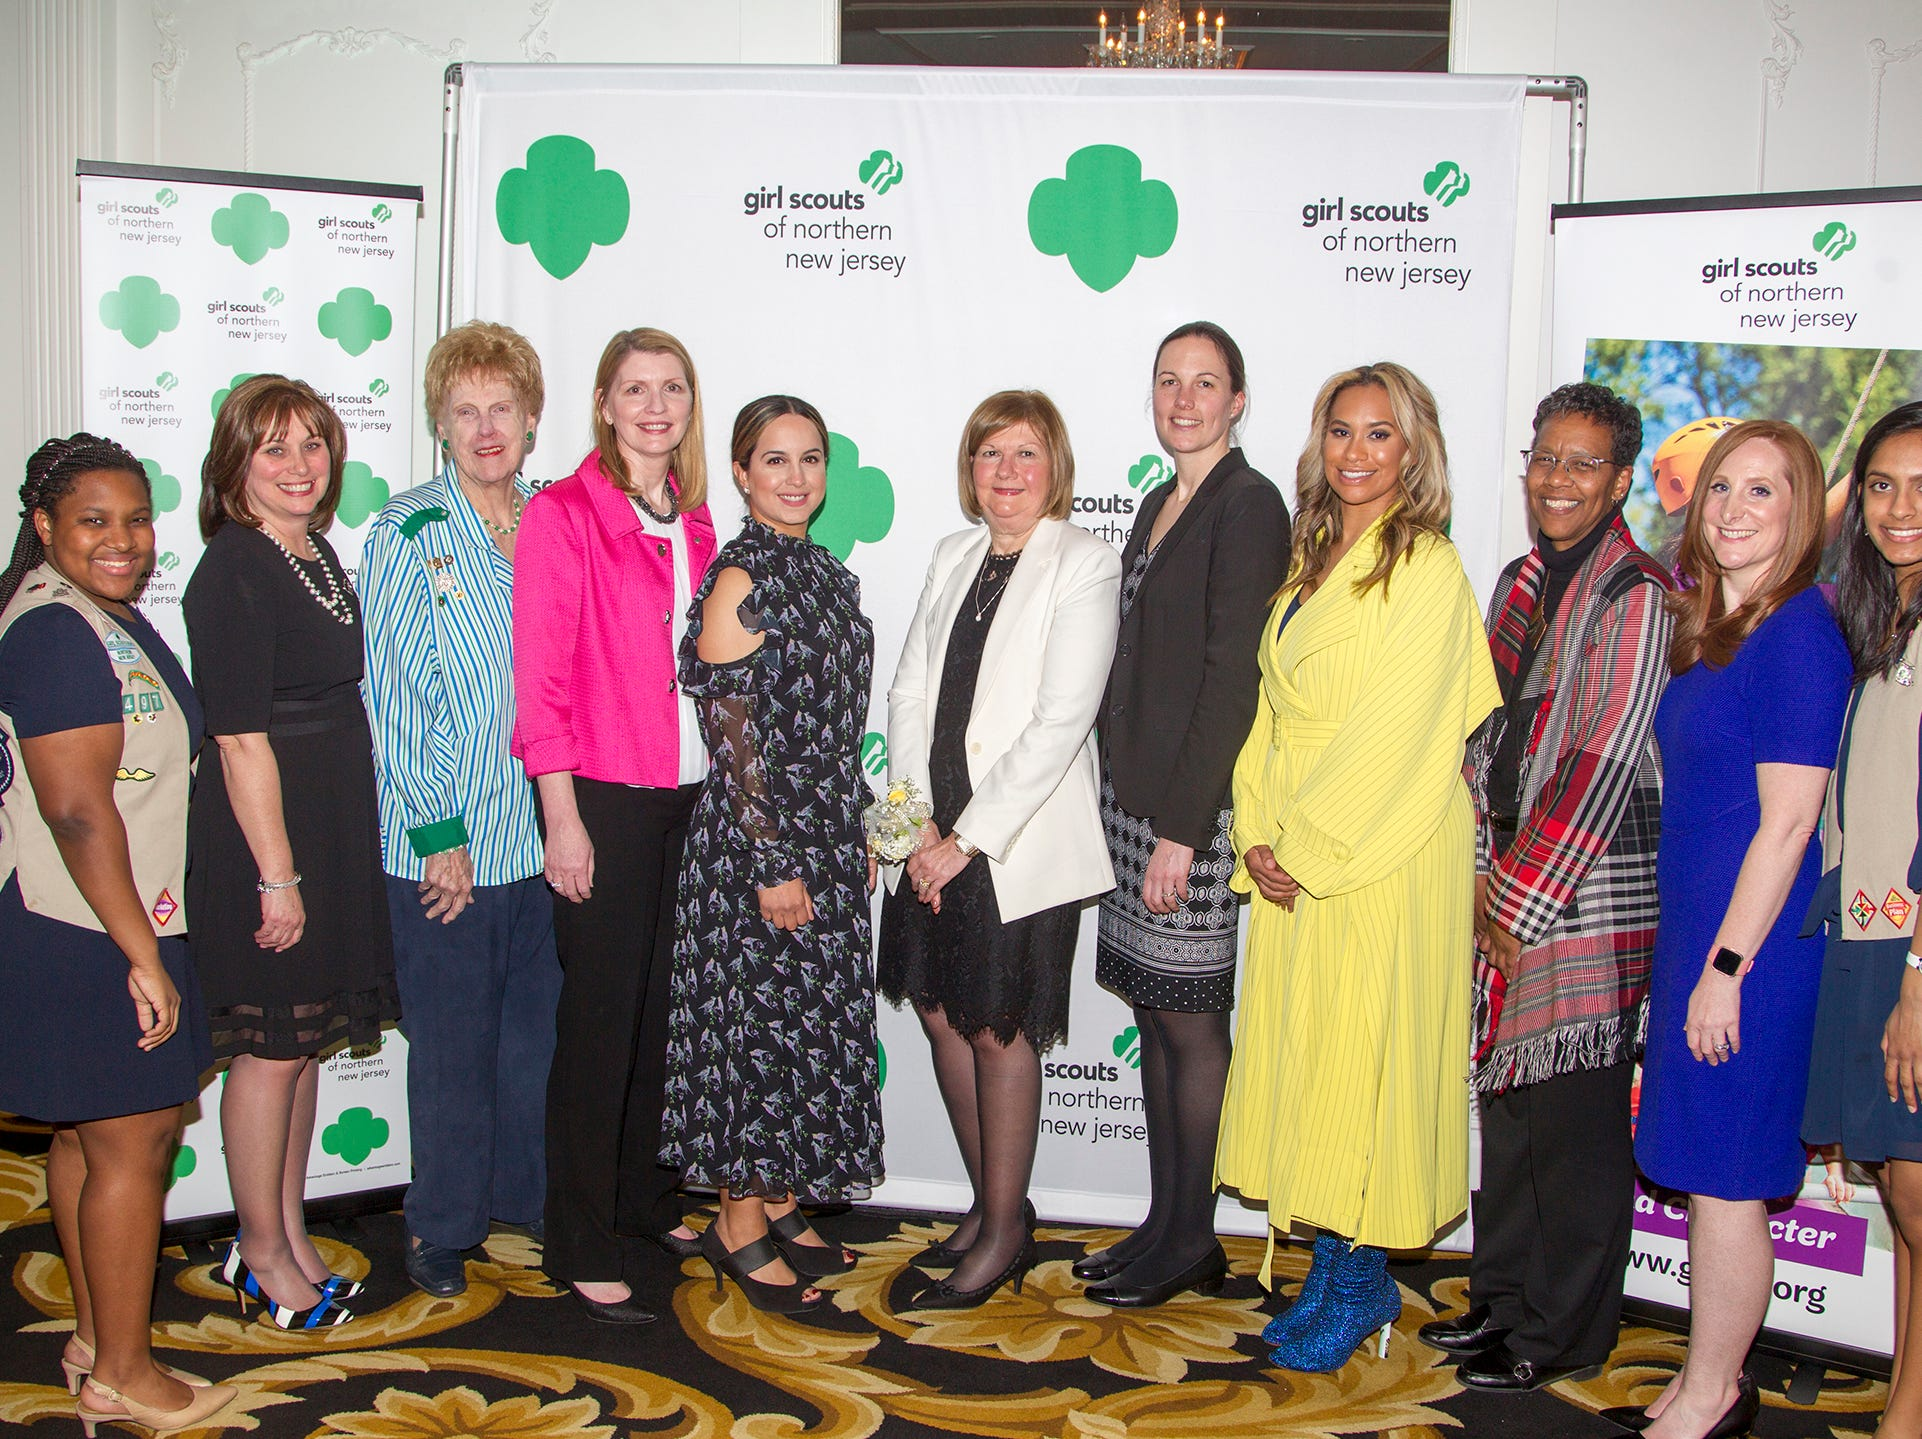 Lexi Dunn, Betty Garger, Honorees - Martha De Young, Lisa Brady, Balpreet Grewal-Virk, June Bray, Janet Henry Cash, Amber Sabathia, Bette Simmons, Shanna Jafri, Anjali Patel. Girl Scouts of Northern New Jersey held its Women of Achievement 2019 at Westmount Country Club in Woodland Park. 04/04/2019